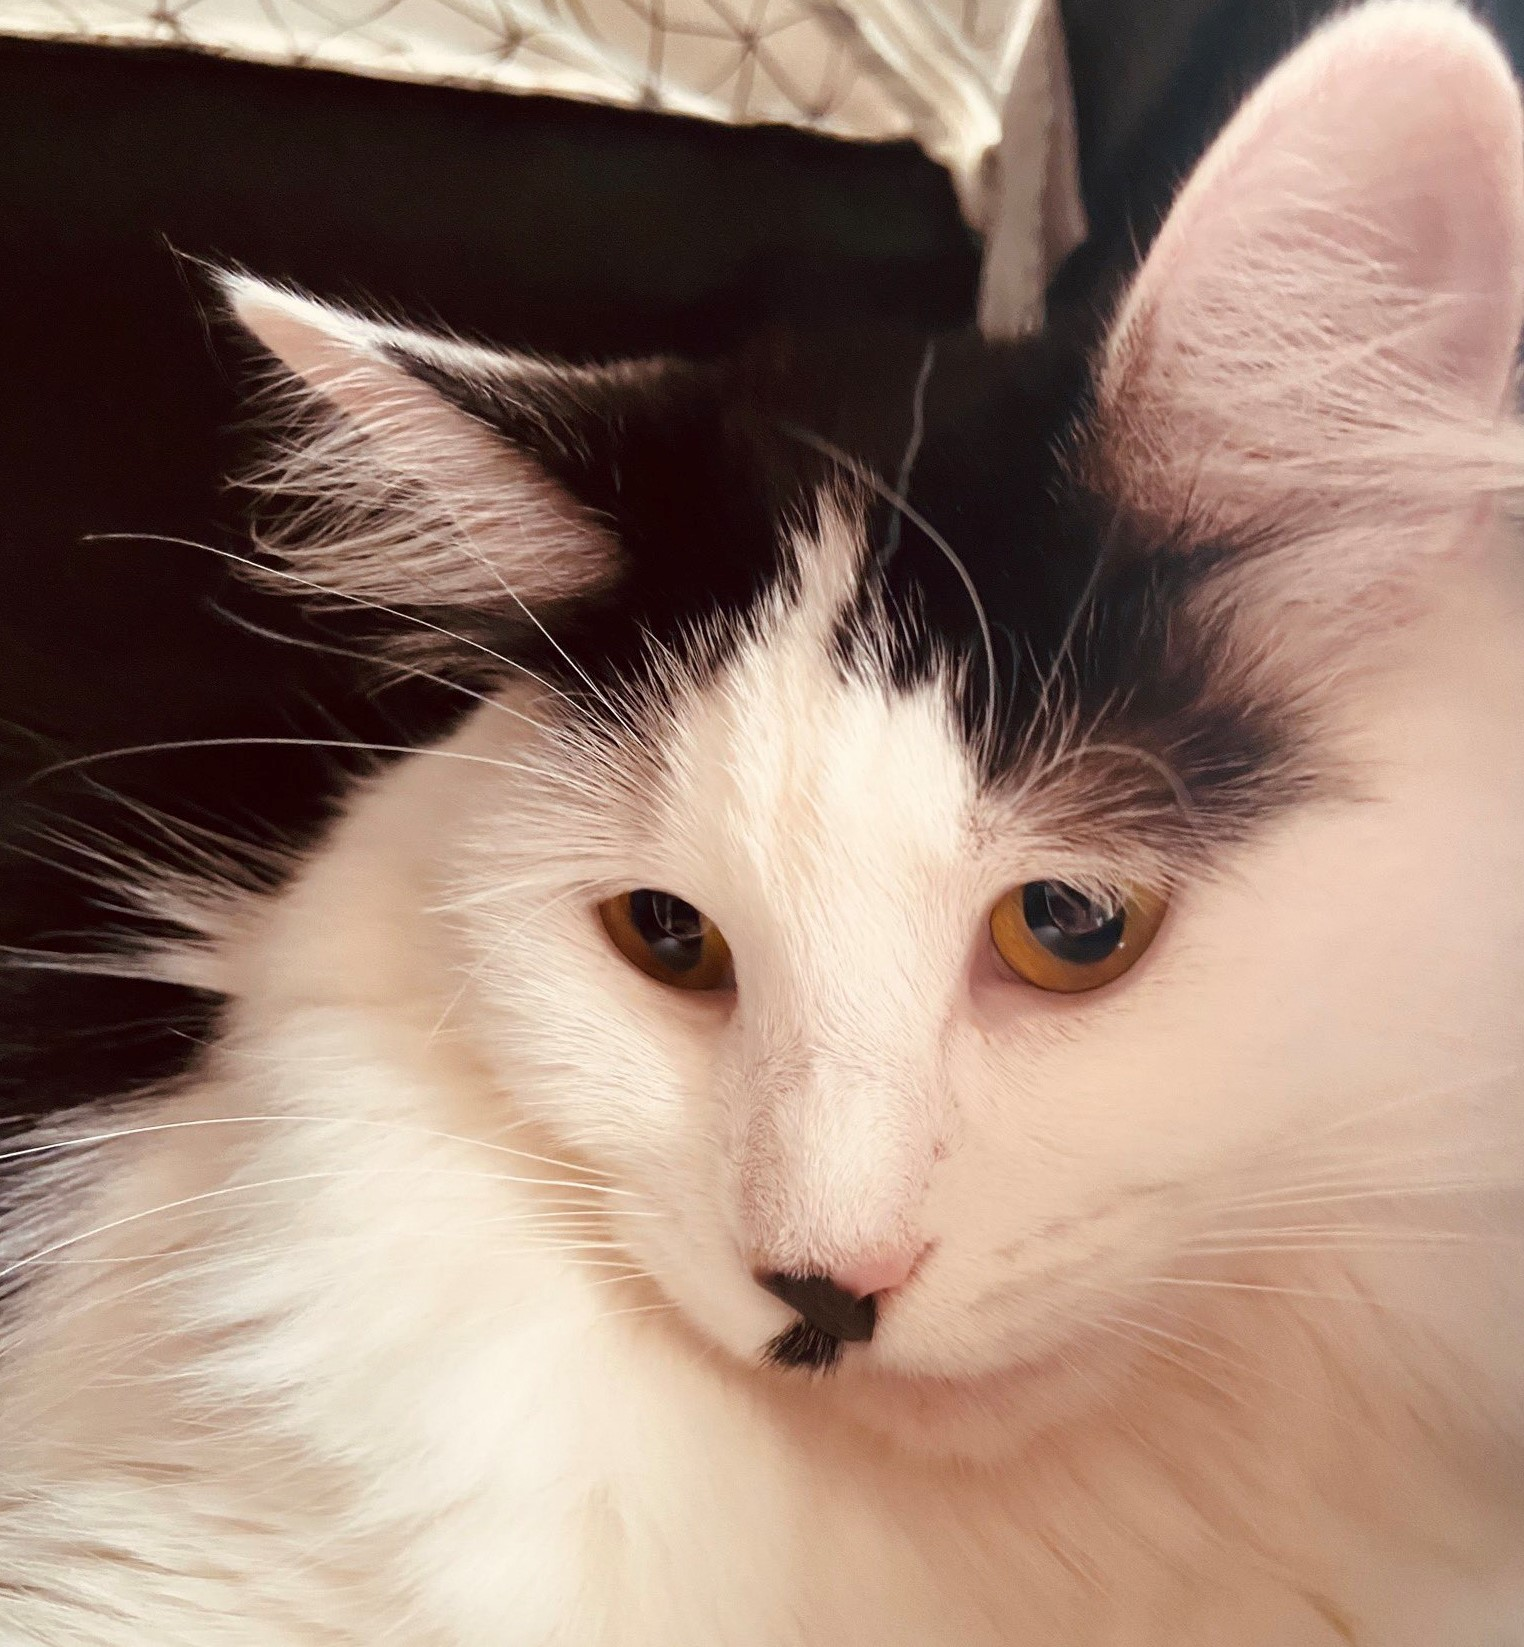 gorgeous black-and-white long-haired kitty cat!